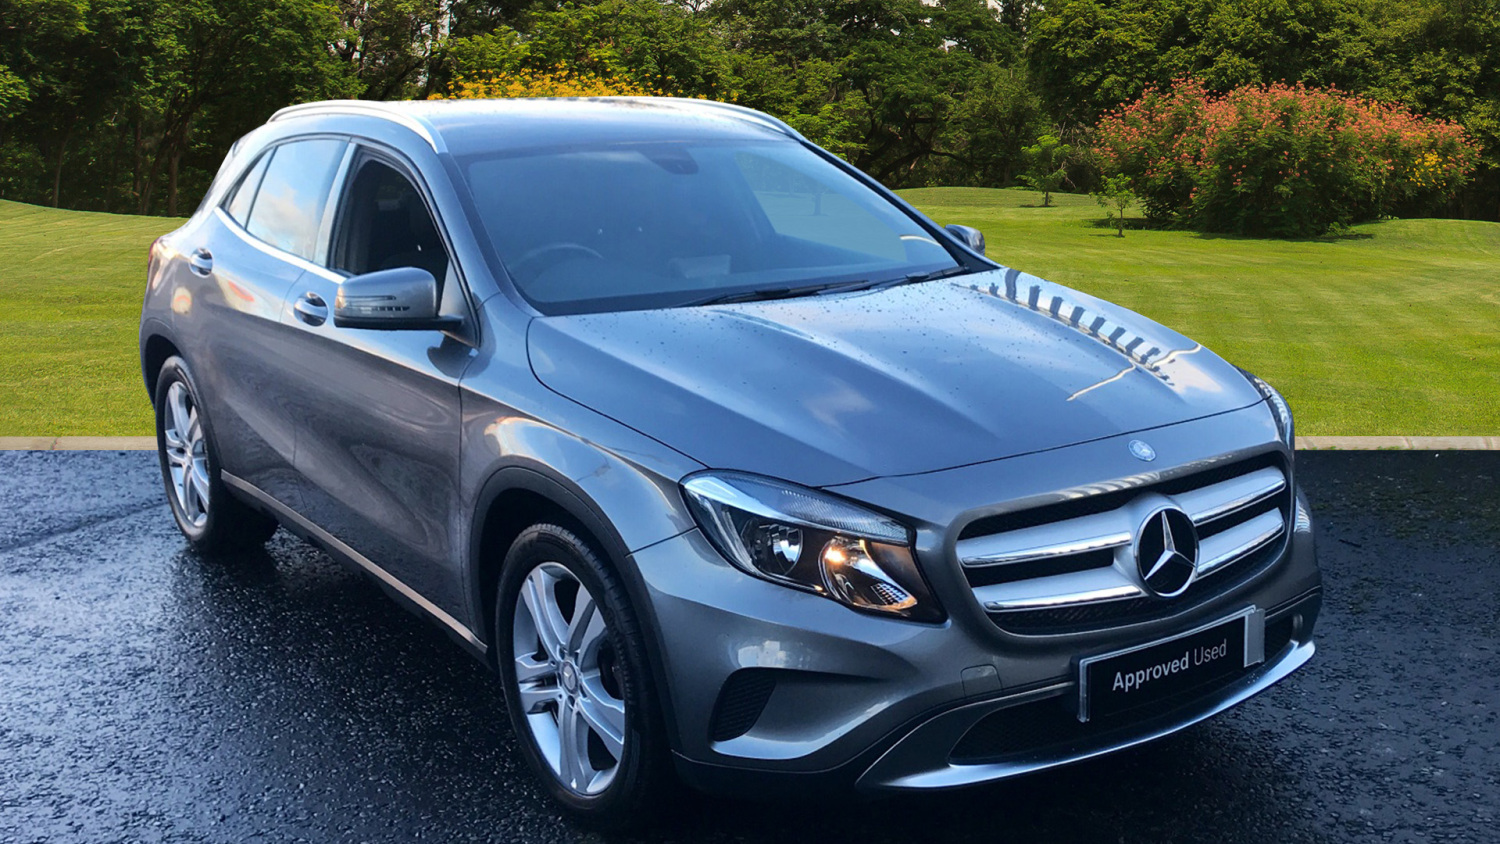 used mercedes benz gla gla 220 cdi 4matic se 5dr auto diesel hatchback for sale vertu mercedes. Black Bedroom Furniture Sets. Home Design Ideas